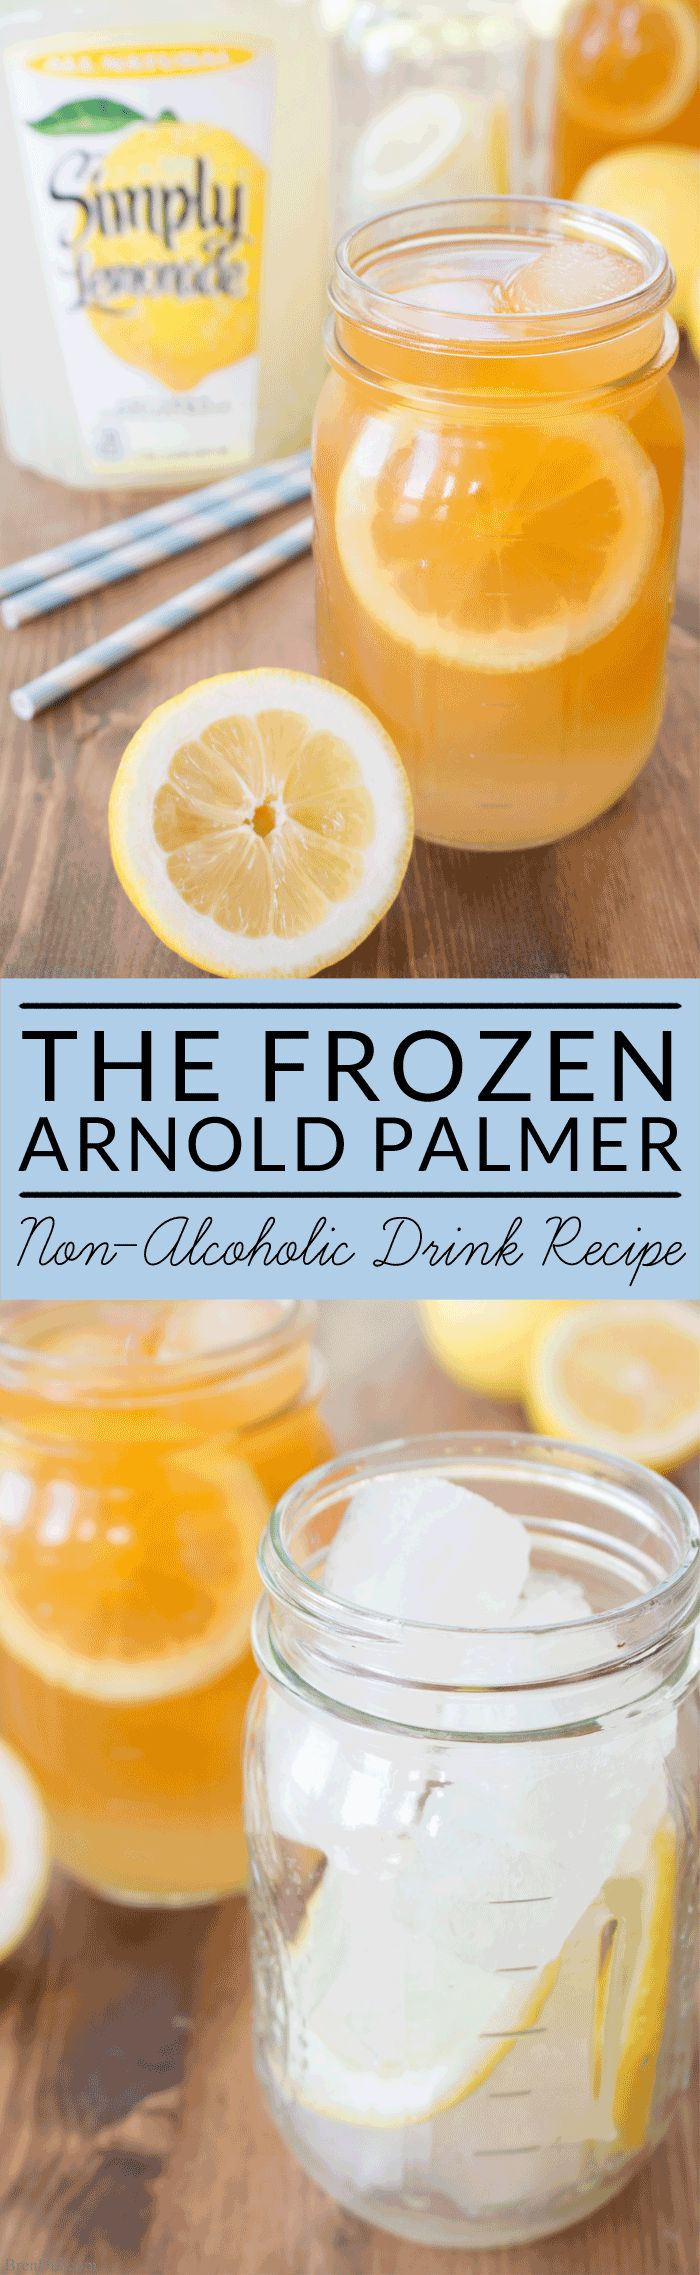 Looking for a crisp refreshing summer drink? Try a frozen Arnold Palmer! It's a delicious non-alcoholic beverage made with lemonade and ice tea. Plus a bonus tip to make sure your drink never becomes weak and watery. #AlwaysDelicious #ad